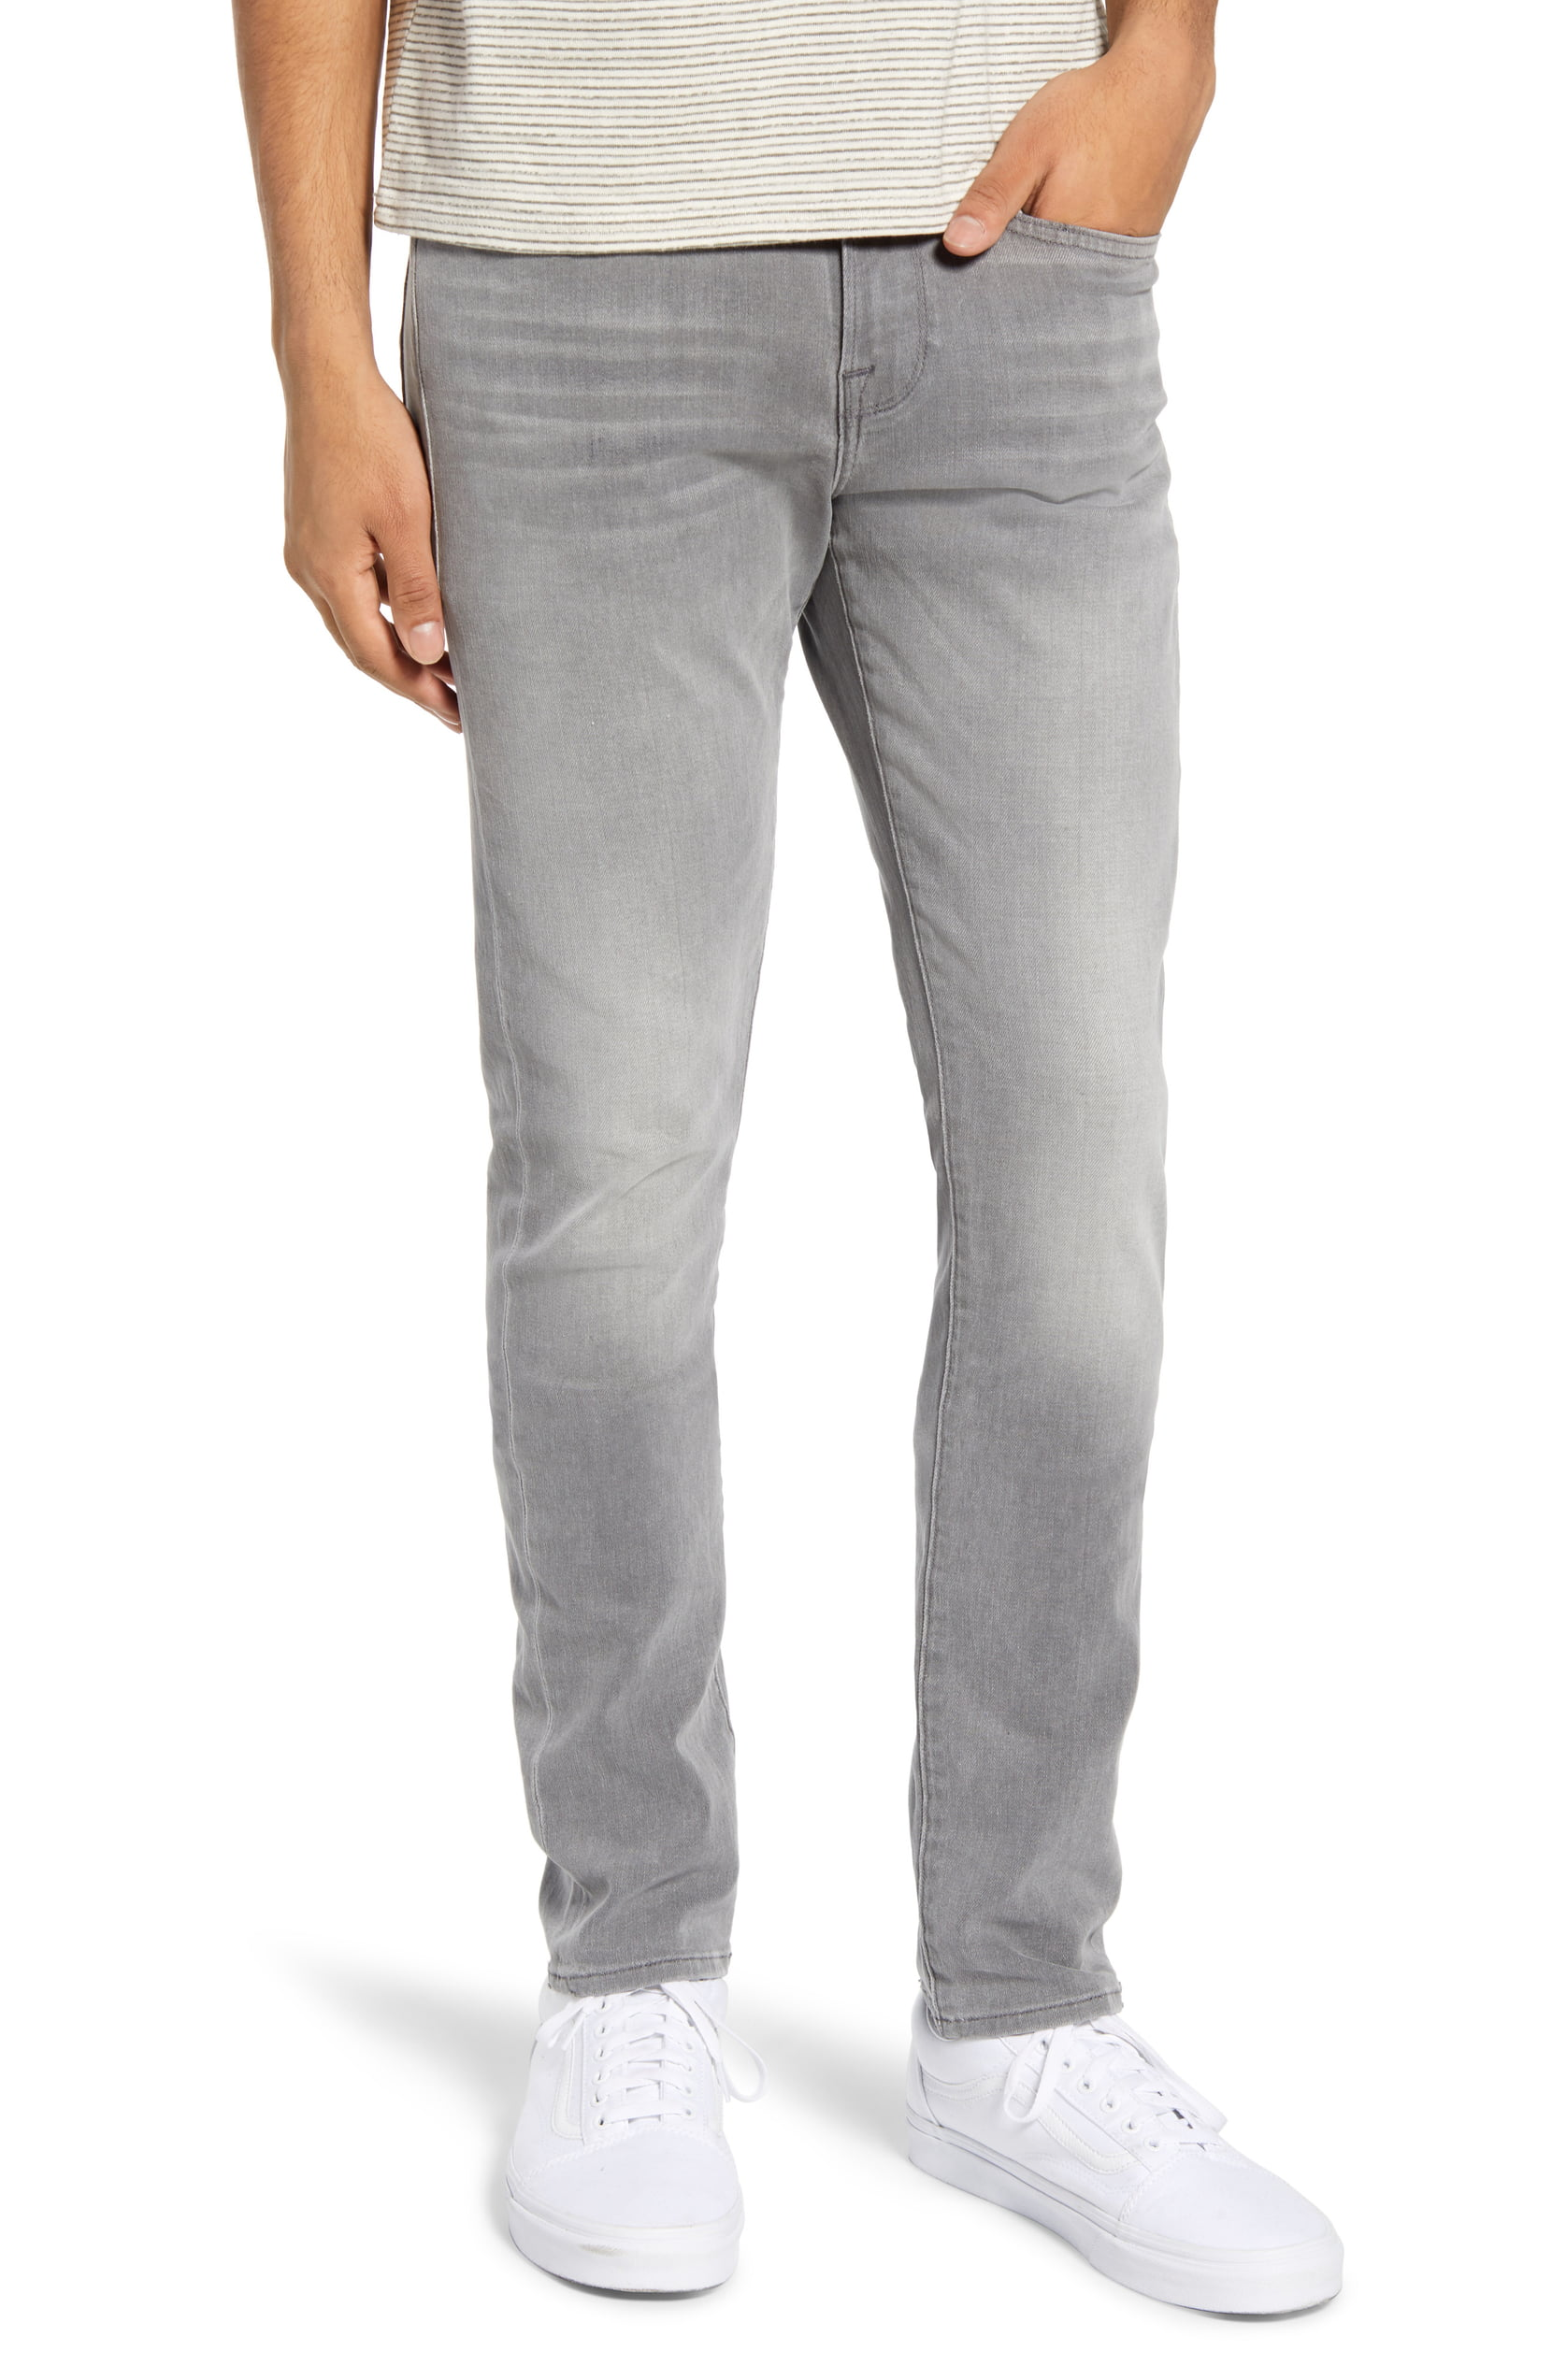 Frame Mens Jeans Fade To Gray Size 32x32 L/'Homme Skinny Fit Stretch $199 092